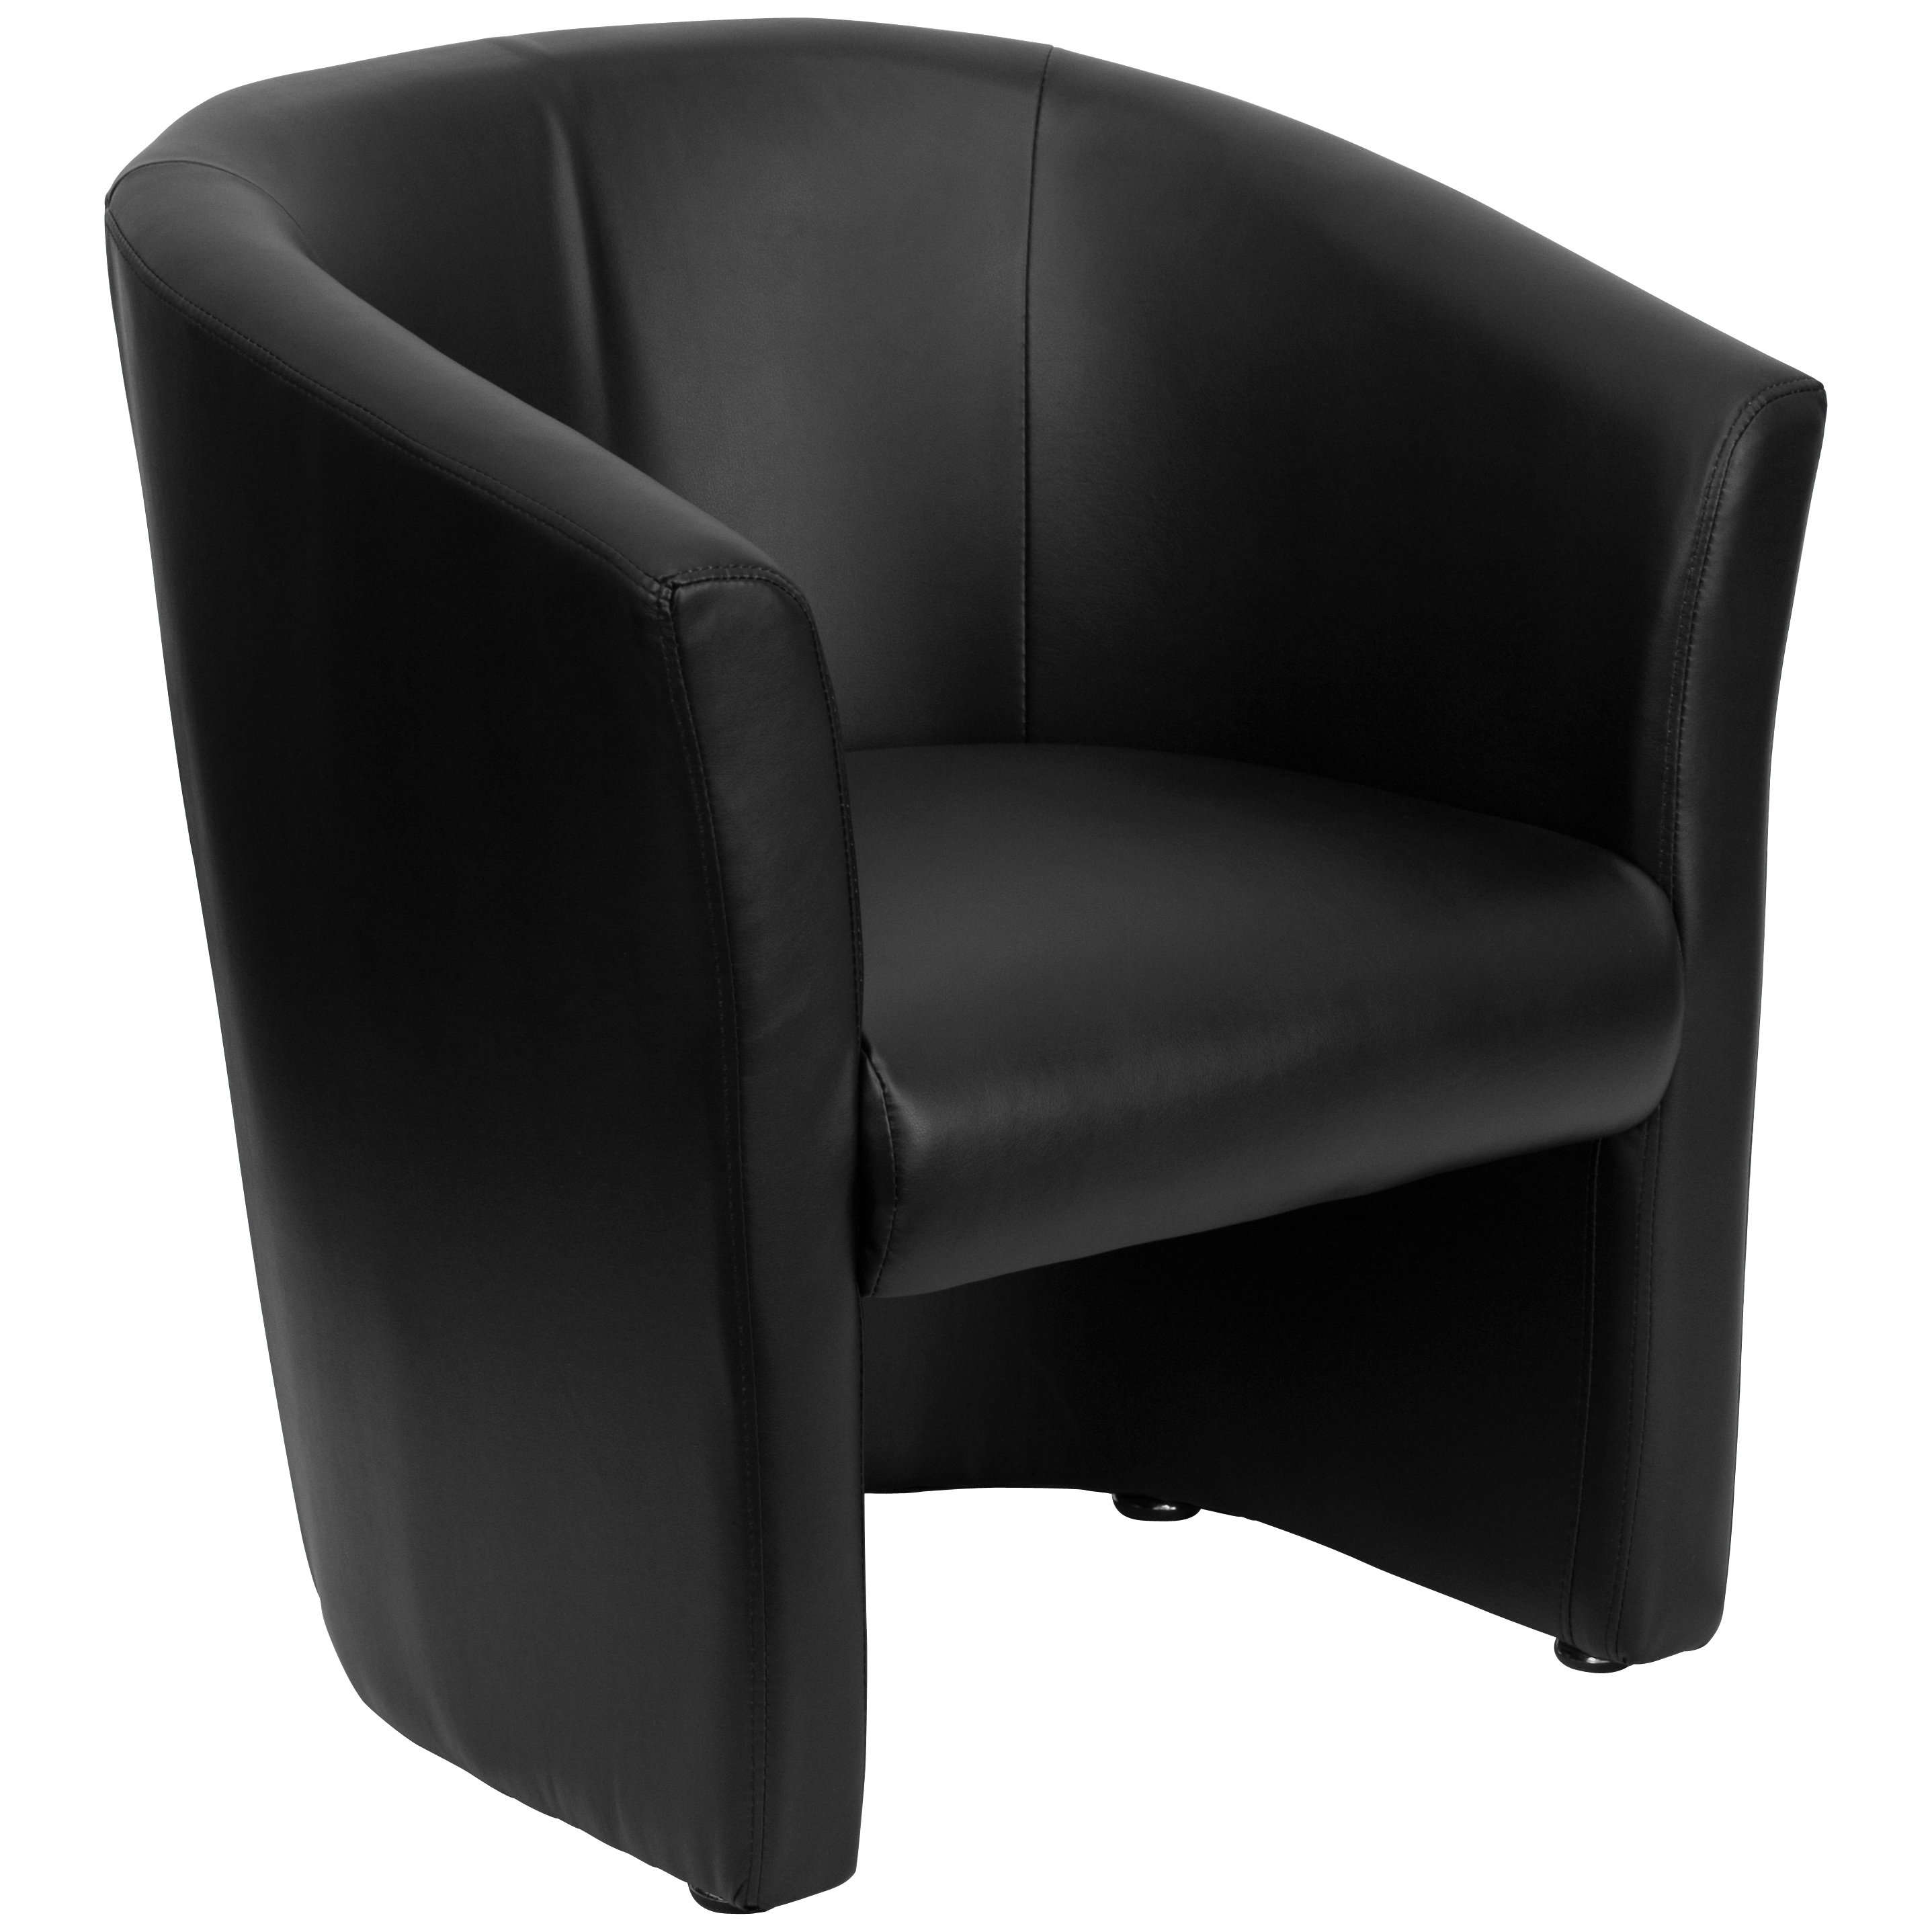 Black Barrel Chair Flash Black Leather Barrel Shaped Guest Chair By Oj